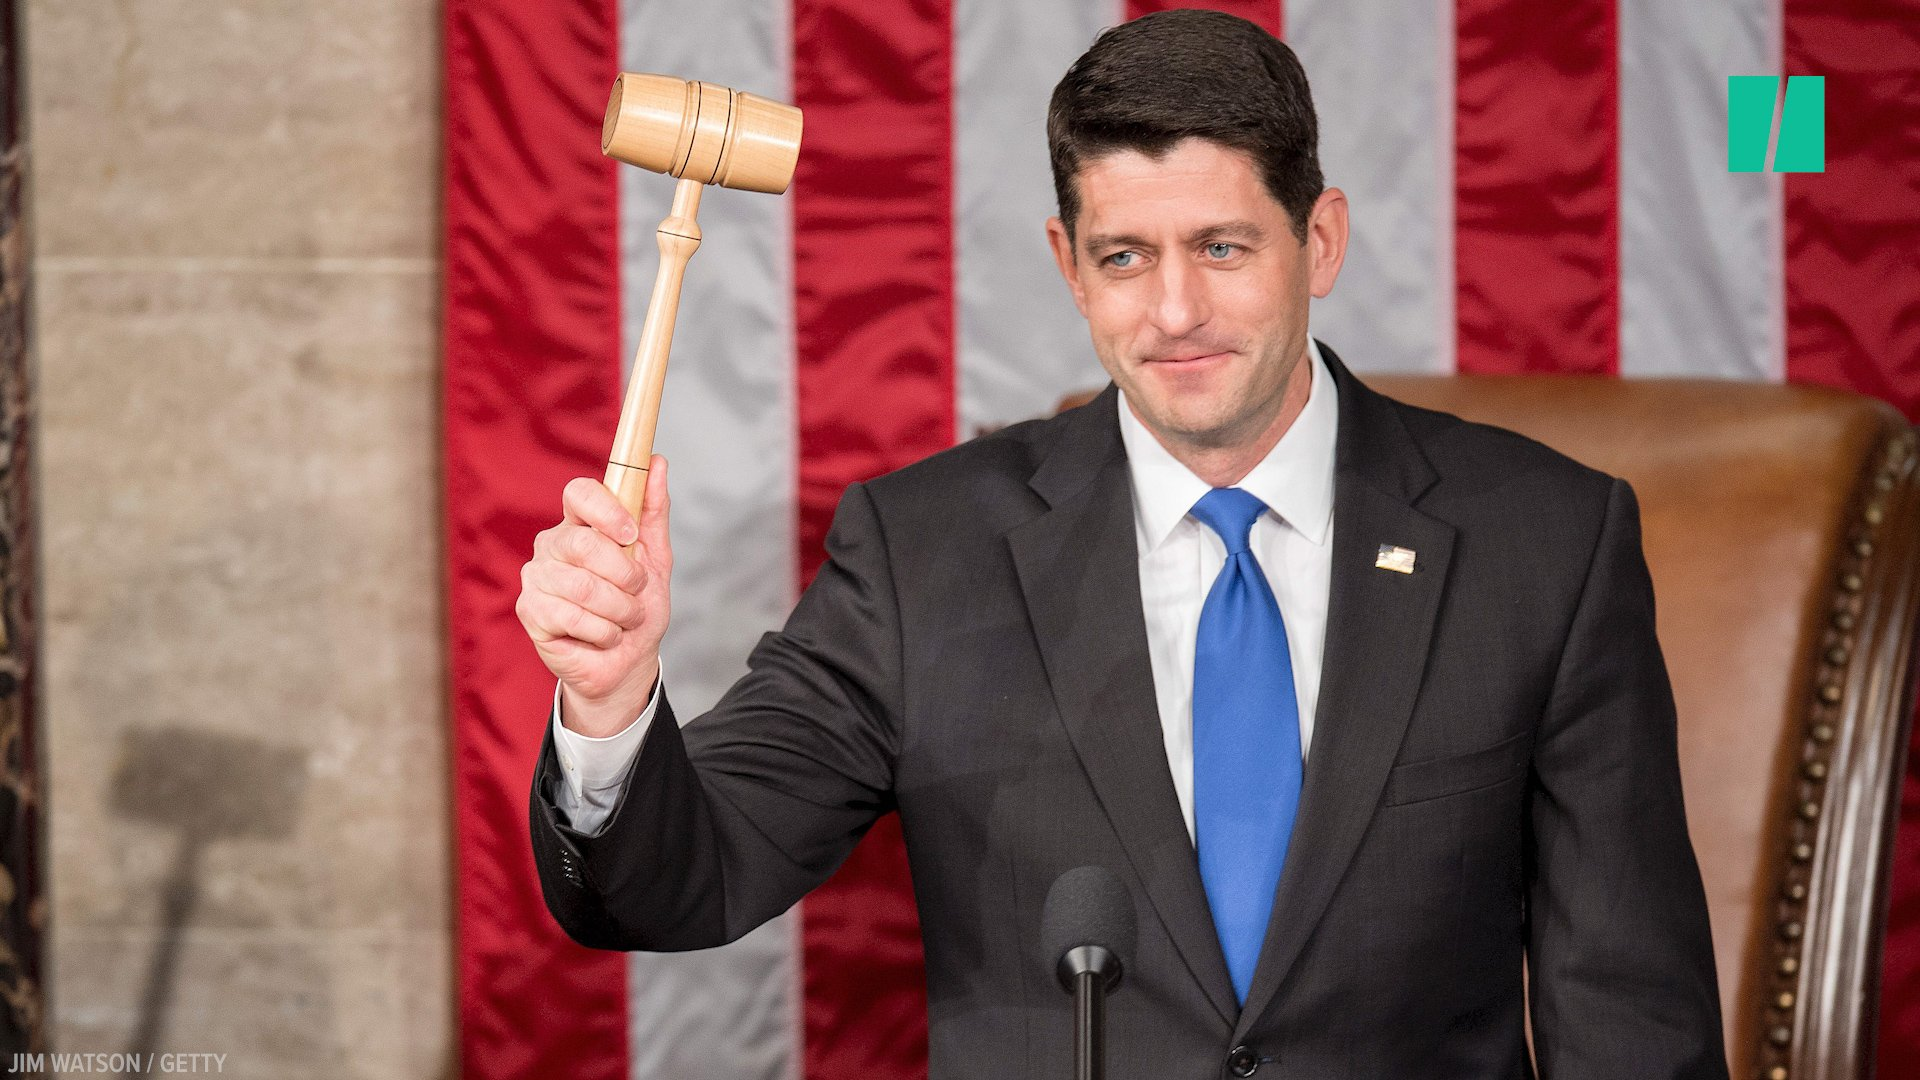 """Paul Ryan says he achieved """"a heck of a lot"""" as Speaker of the House. https://t.co/Rebez0YXiU"""